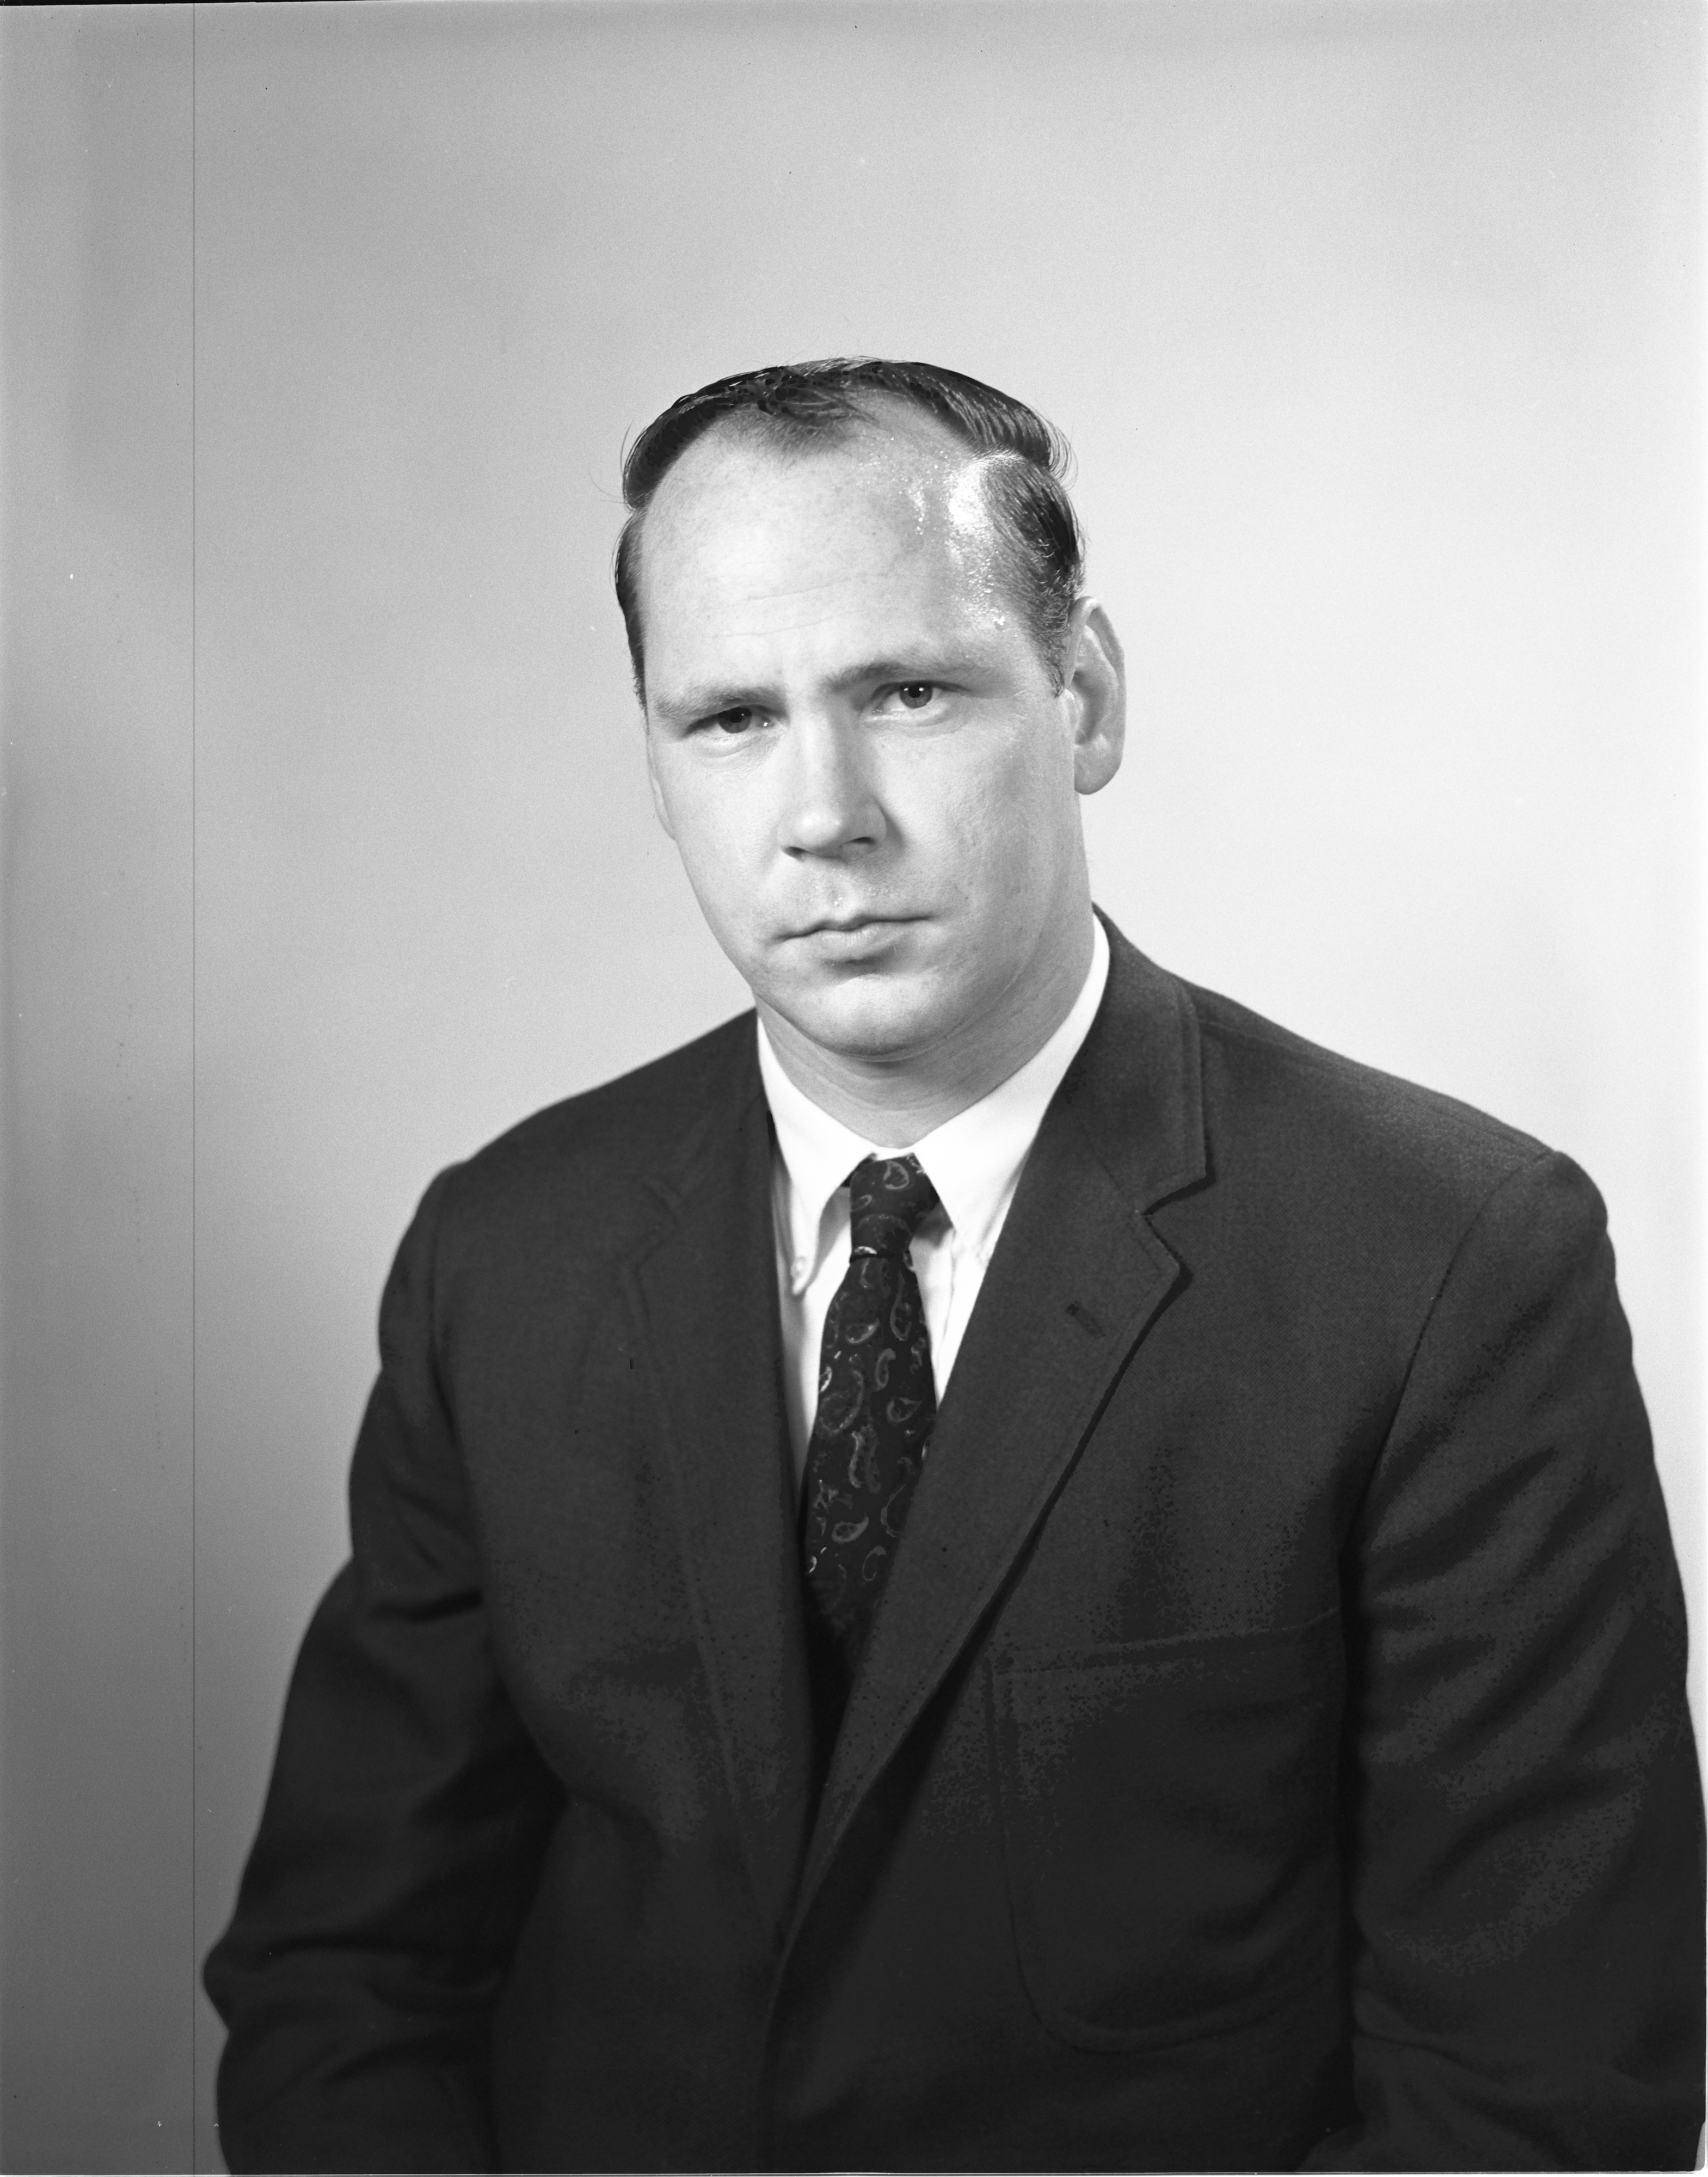 Washtenaw County Sheriff's Department Sgt. Thomas Dorrance, July 1968 image